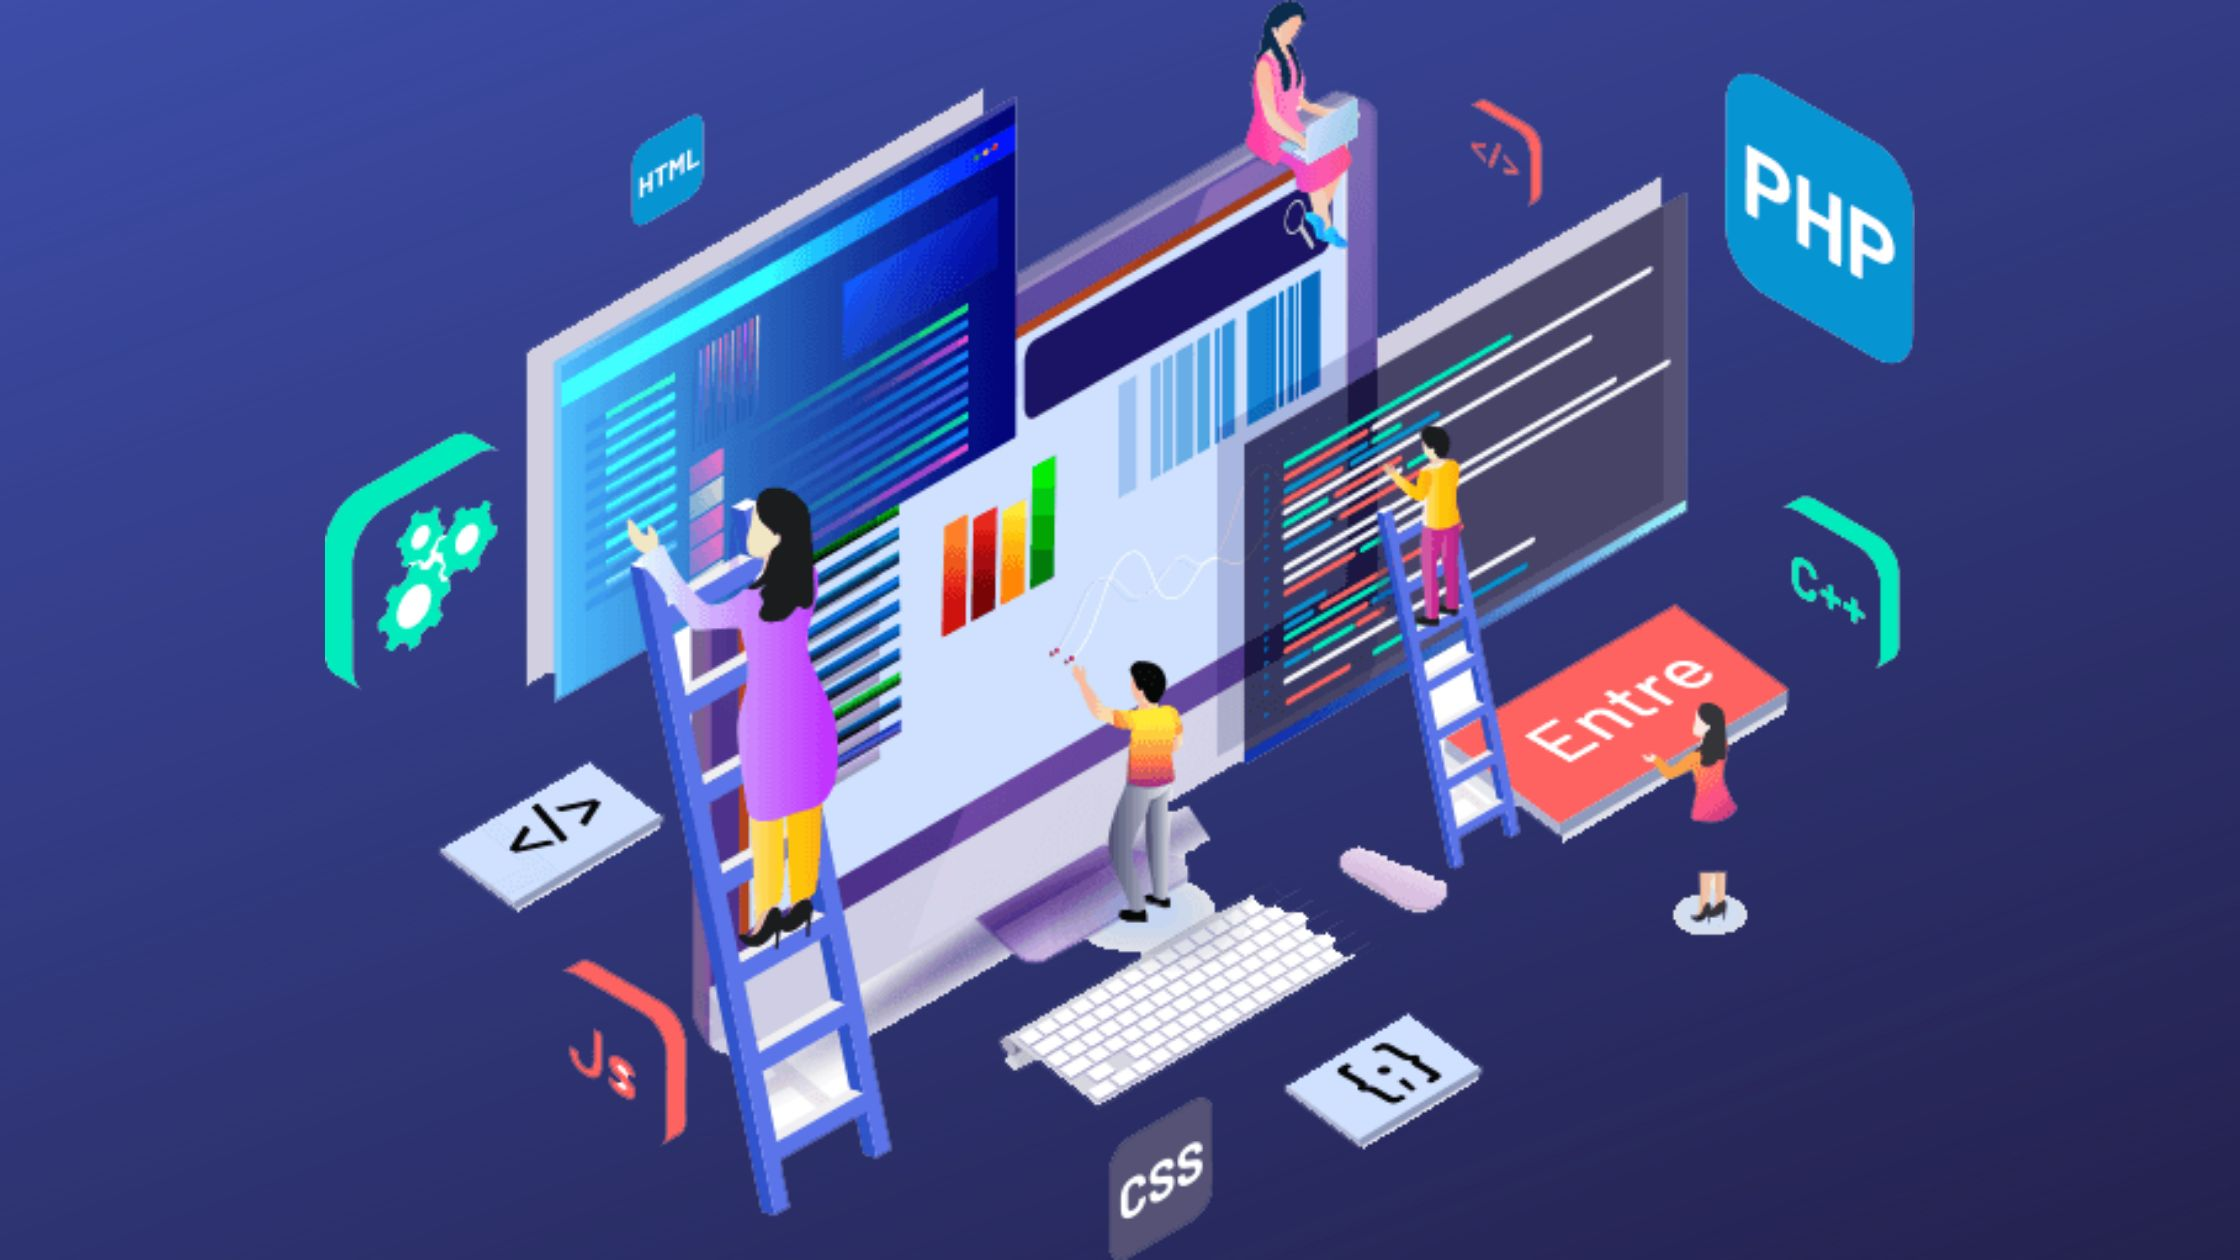 The Best PHP Frameworks To Use for Web Development in 2021